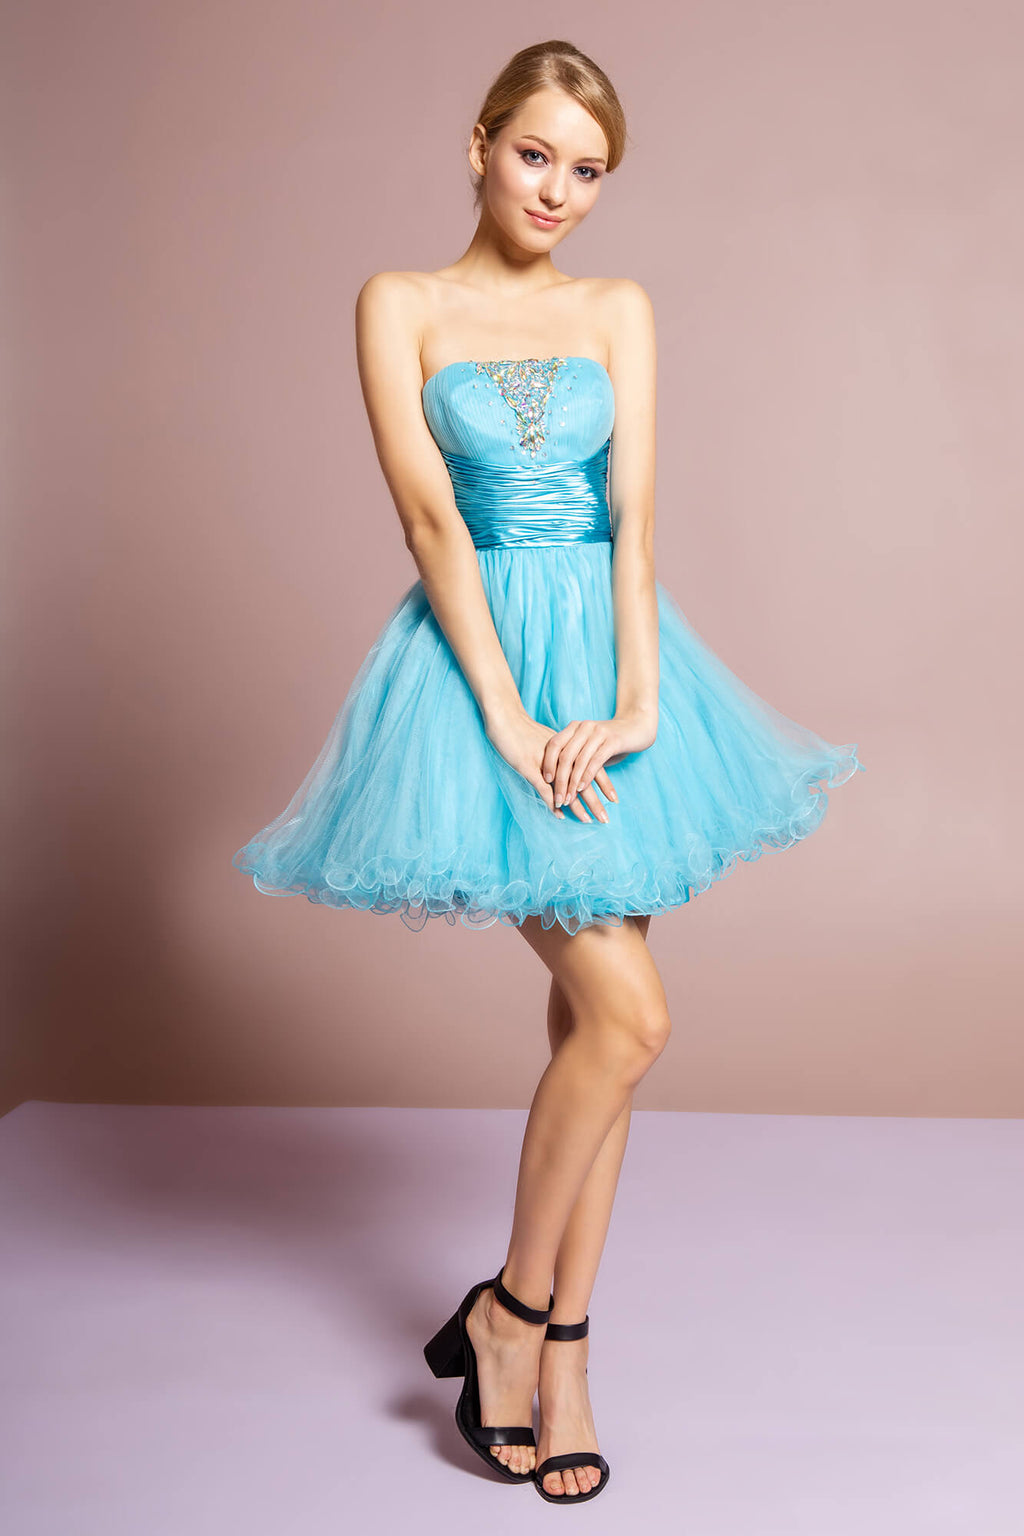 Strapless Short Prom Dress Formal Homecoming - The Dress Outlet Blue